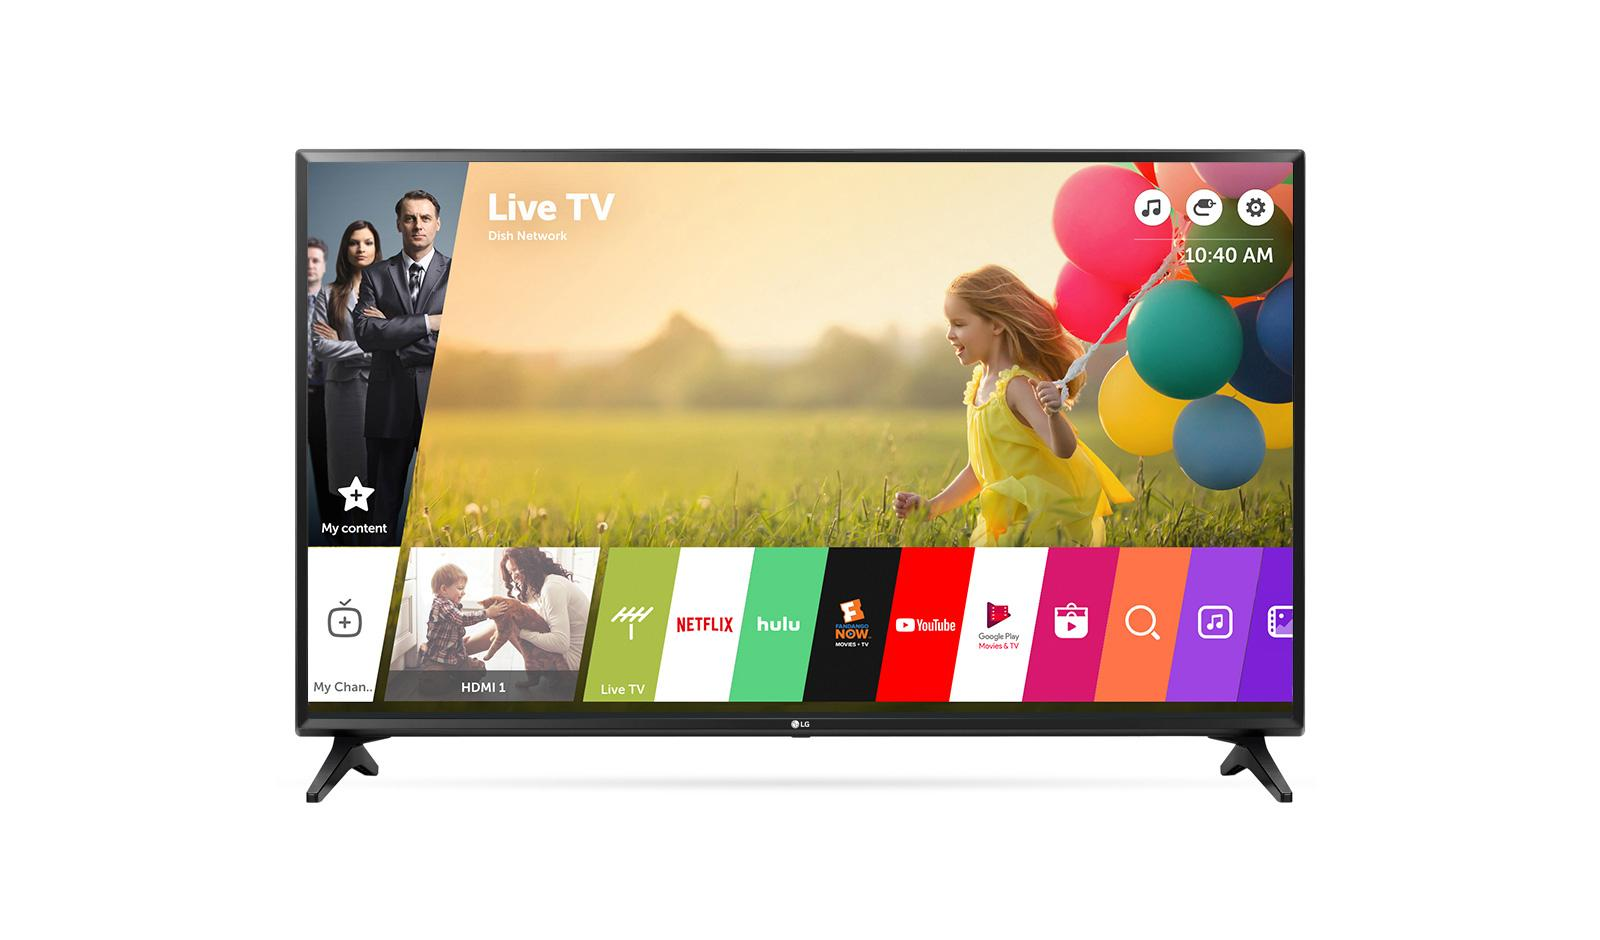 lg 55lj5500 55 inch full hd 1080p smart led tv lg usa